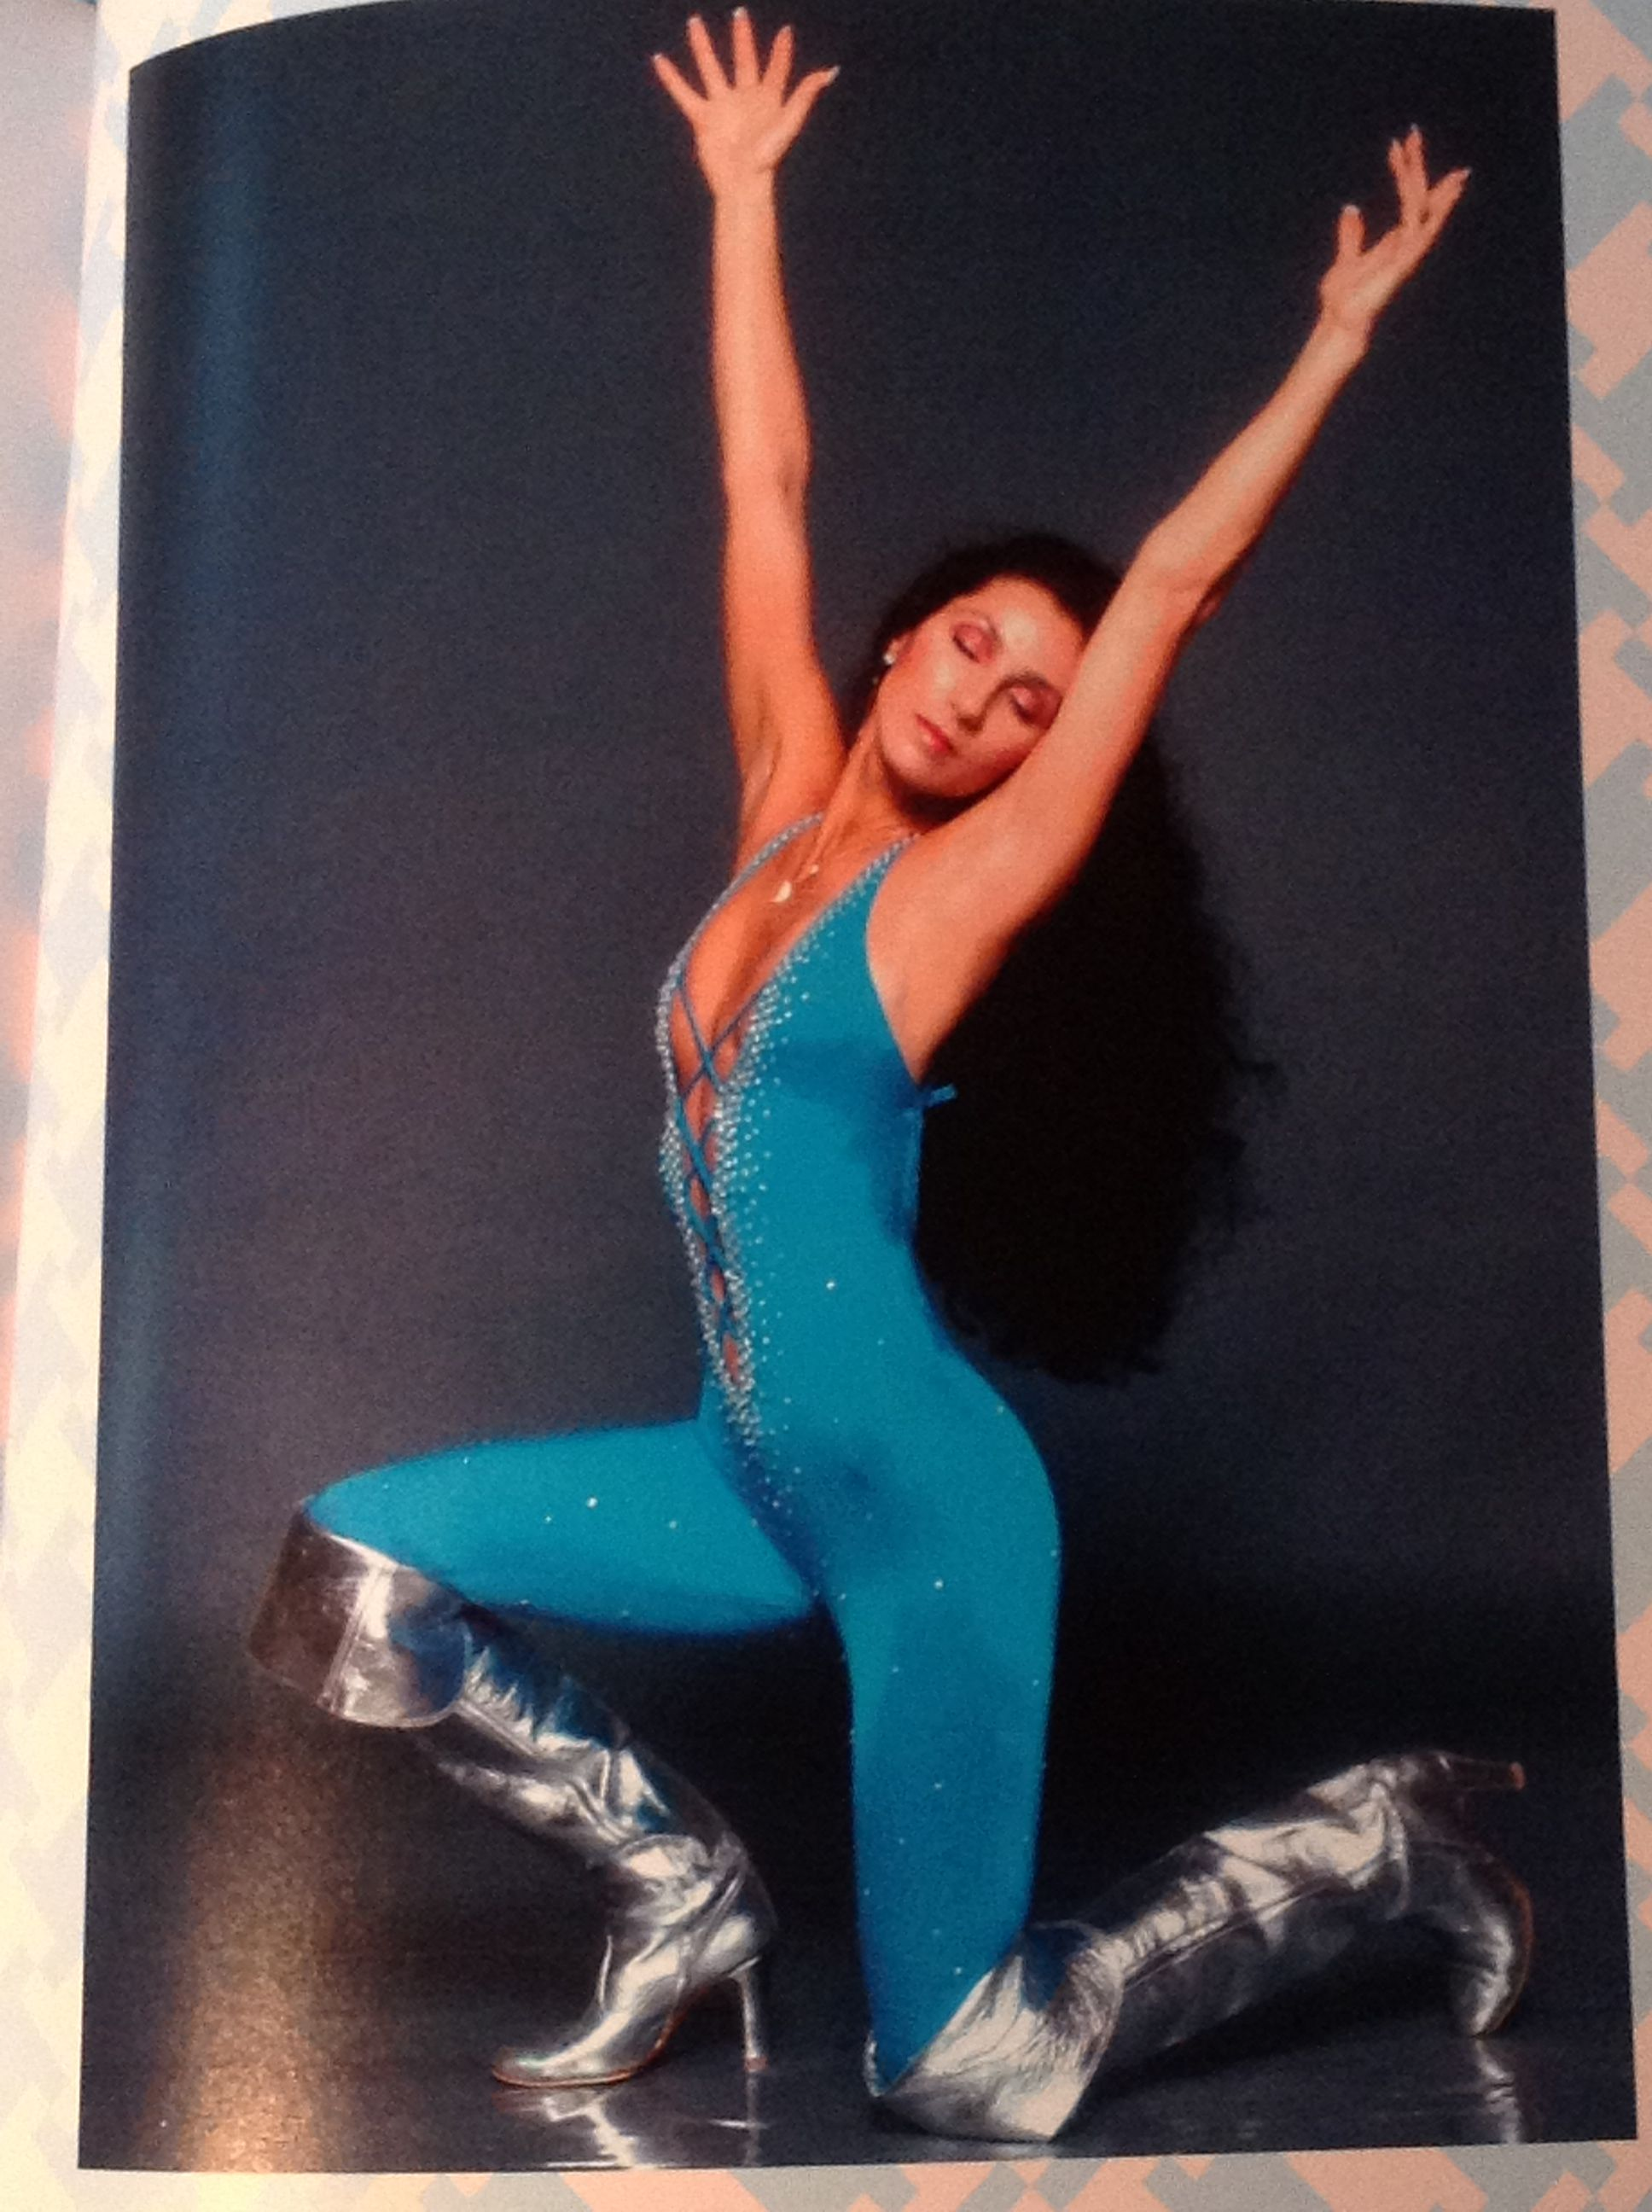 Cher in a Bob Mackie turquoise Spandex/Lycra bodysuit from Vintage Fashion by Ottilie Godrey pg. 109